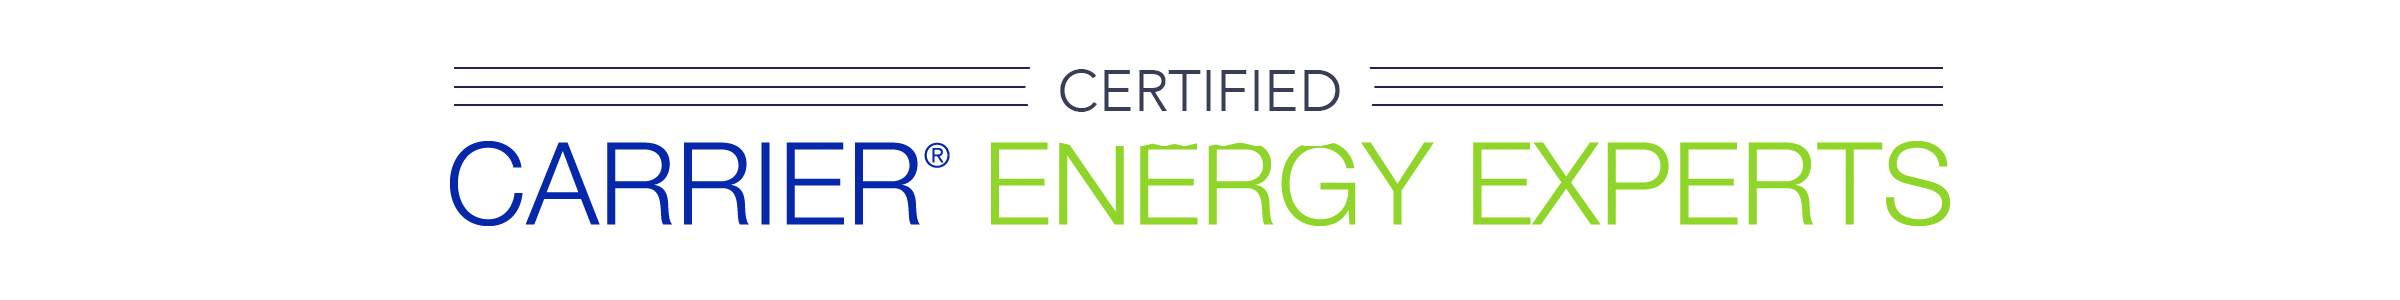 Certified Carrier Energy Experts